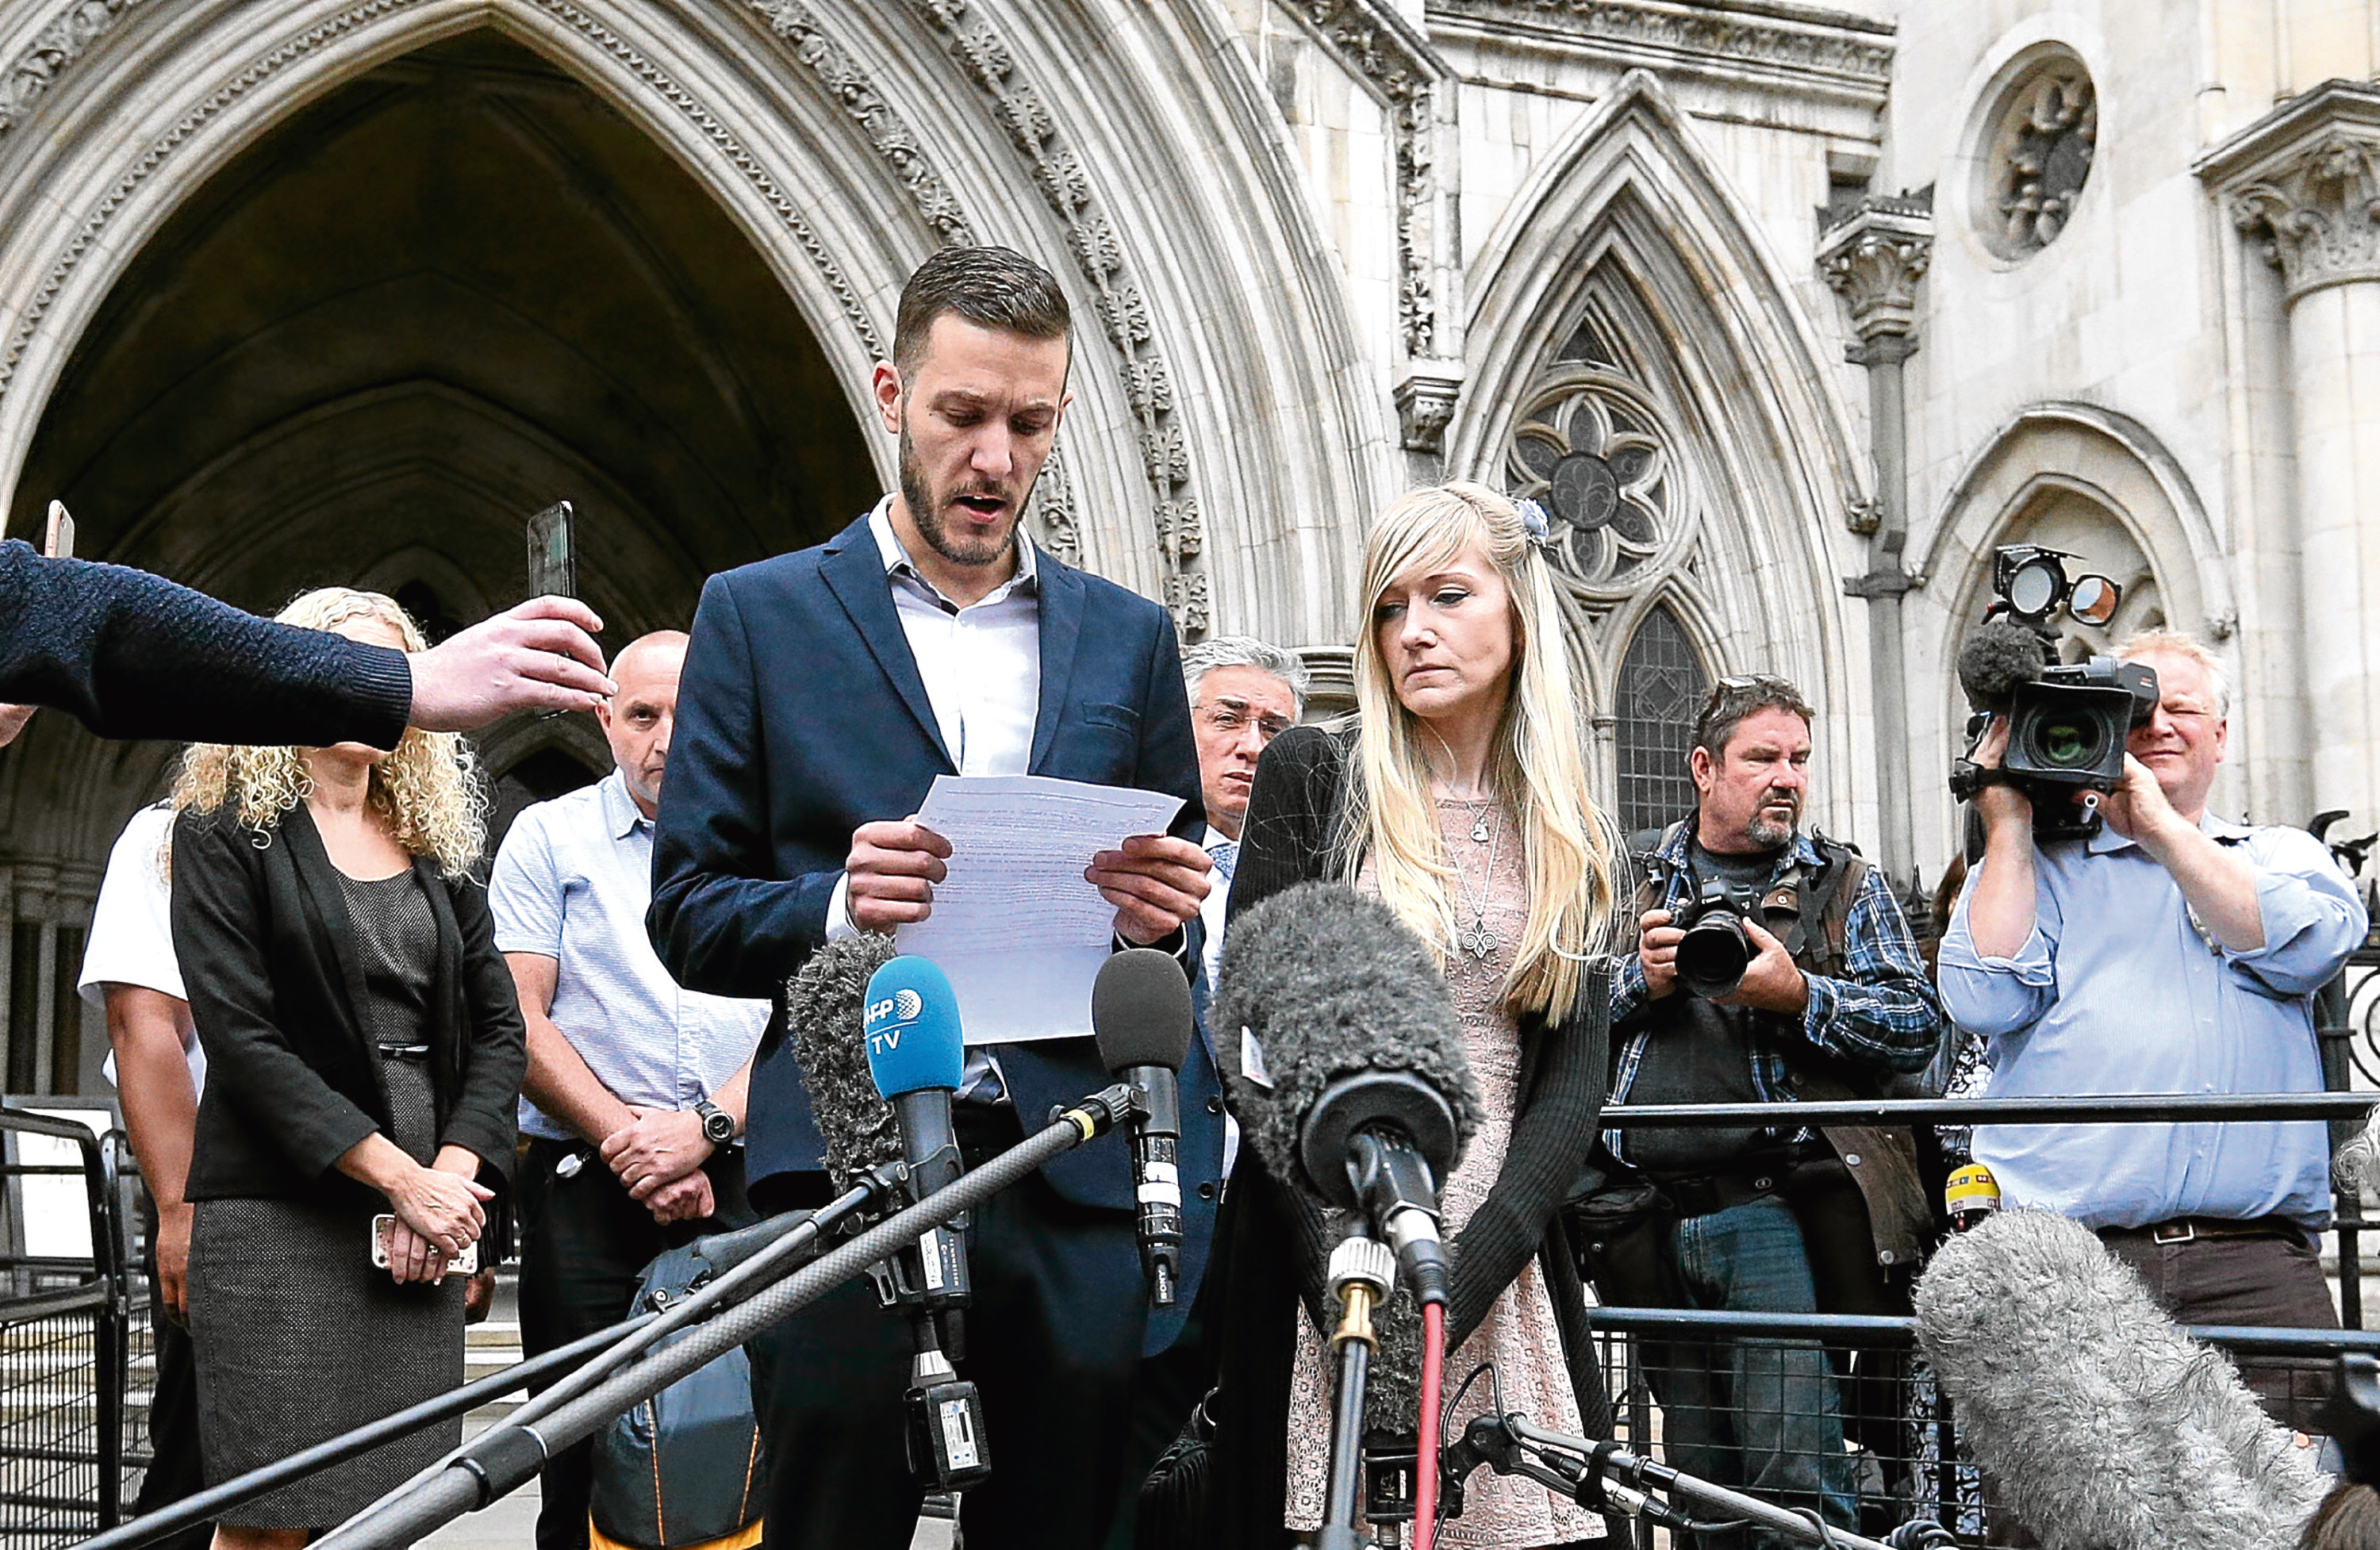 Charlie Gard's parents Chris Gard and Connie Yates speak to the media outside the High Court, London, after they ended their legal fight over treatment for the terminally-ill baby. (Jonathan Brady/PA Wire)